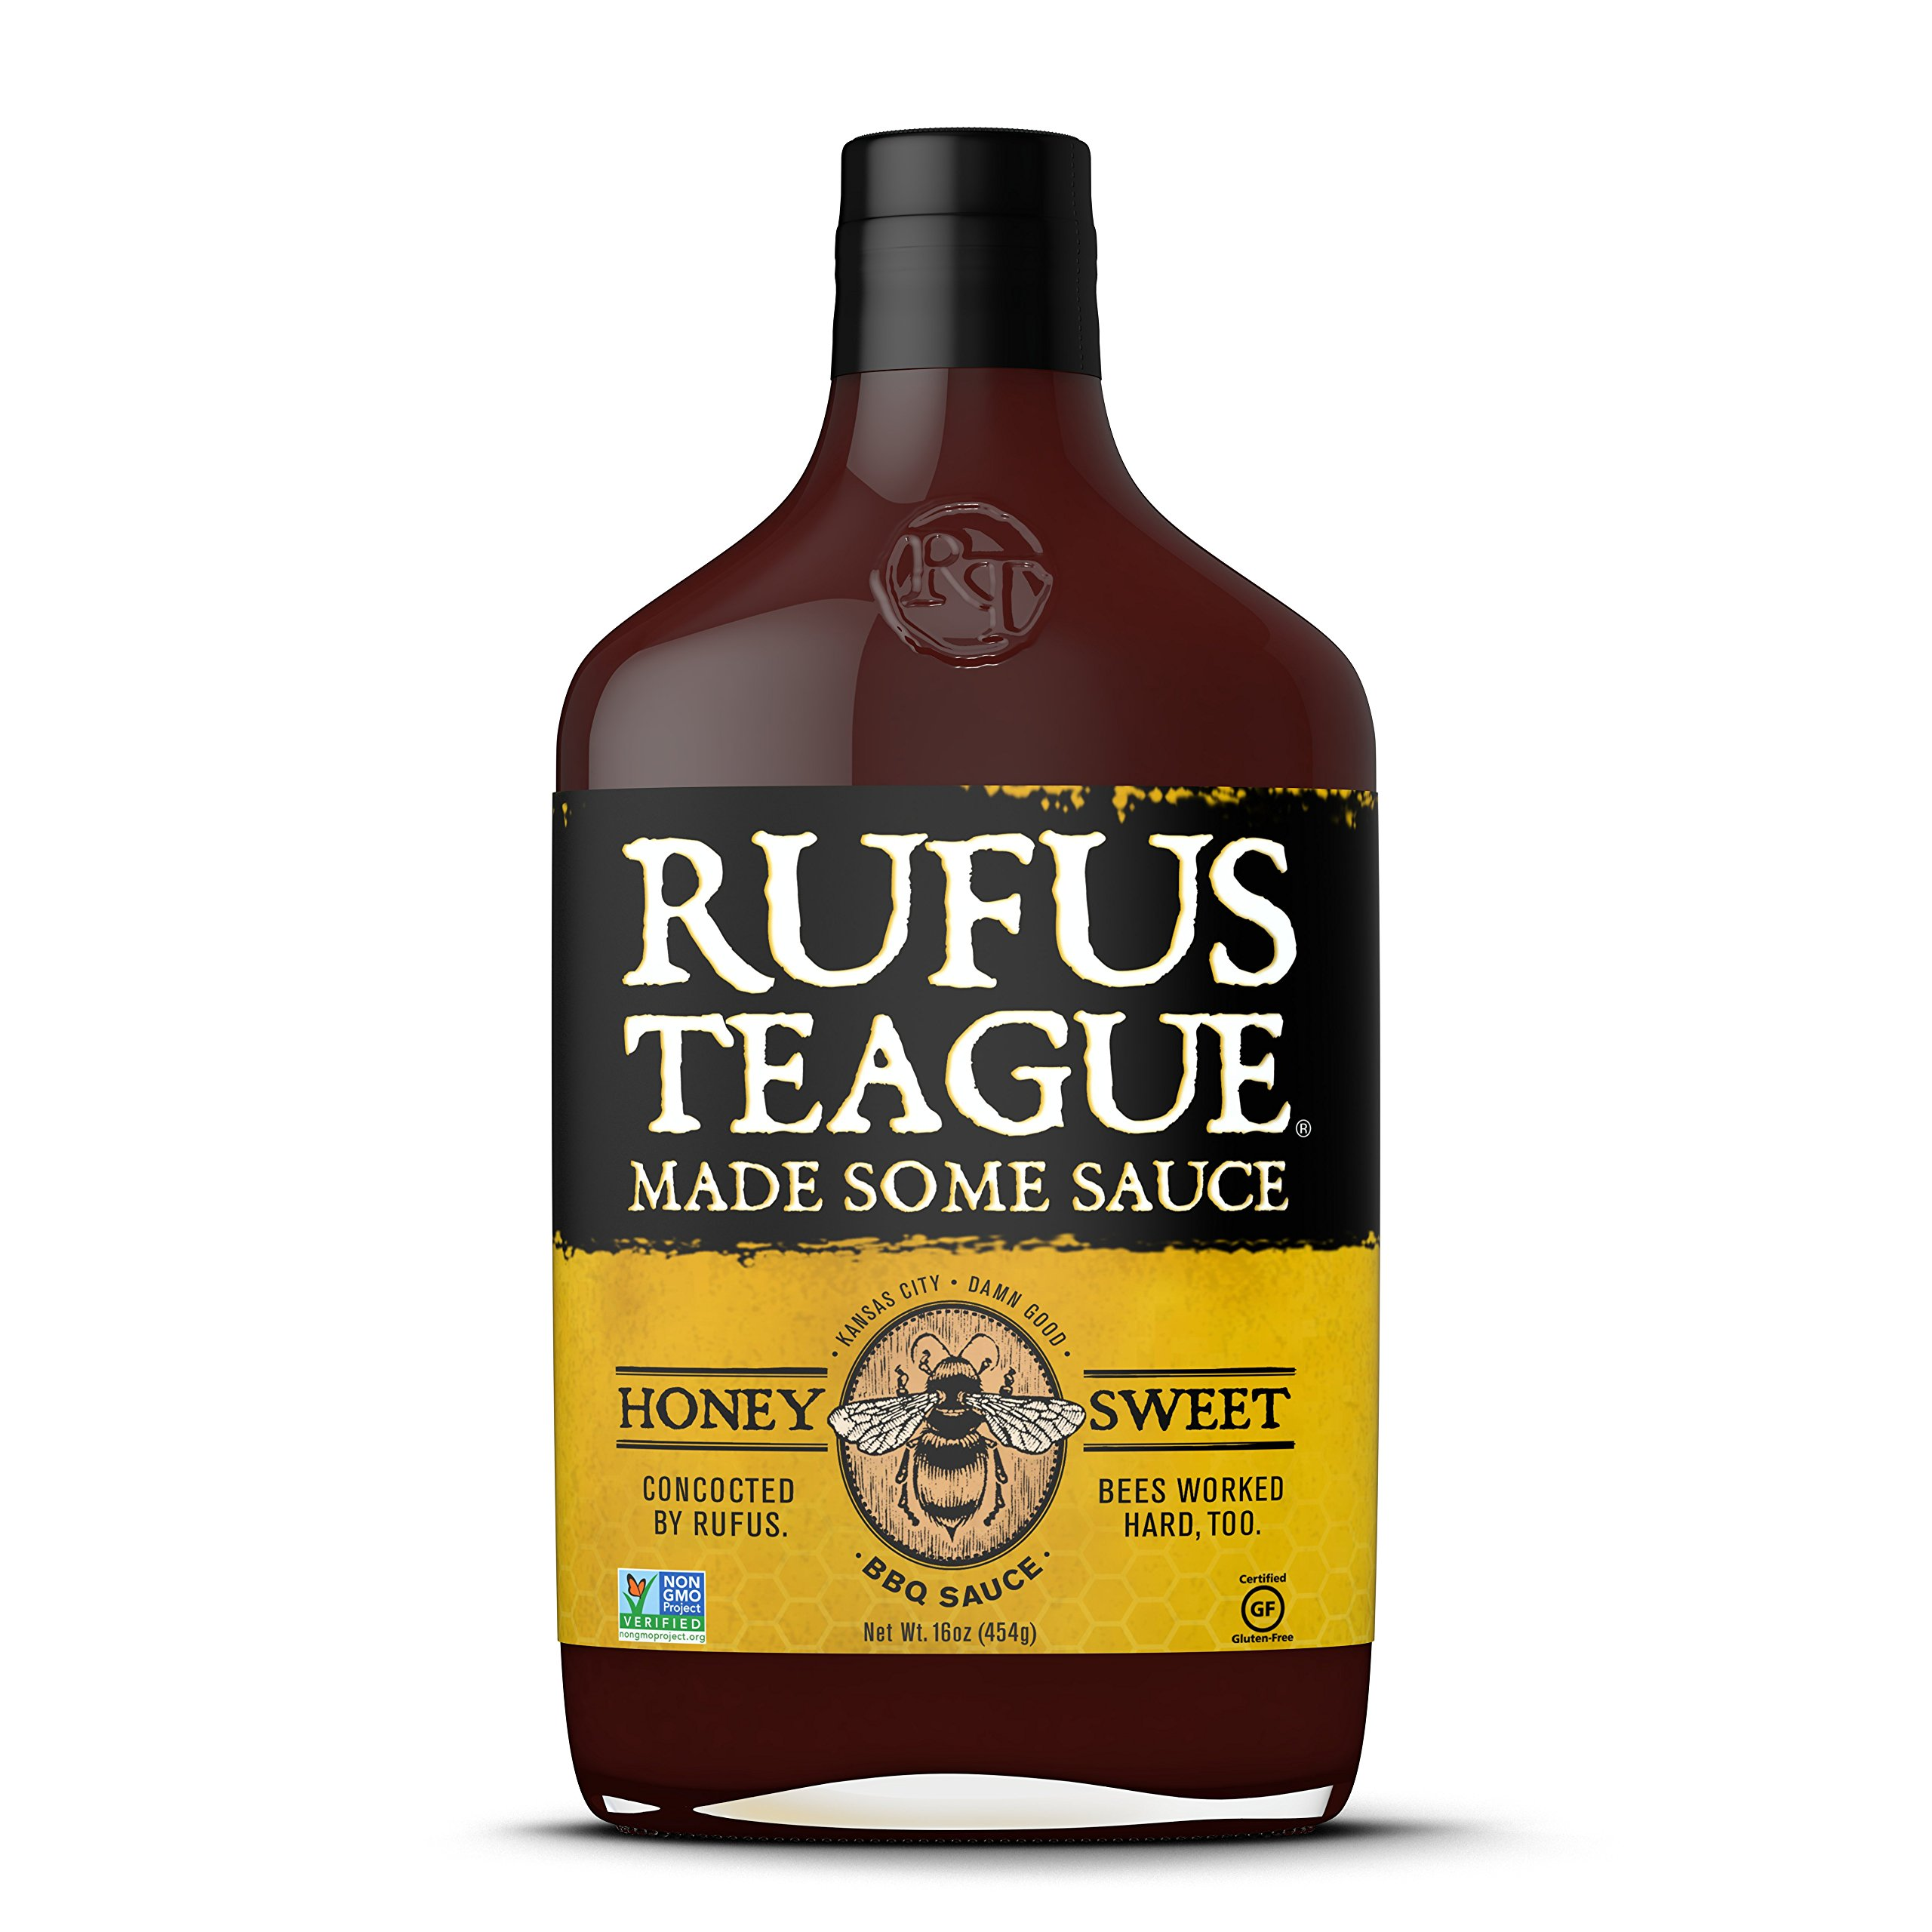 Rufus Teague- Honey Sweet BBQ Sauce-16oz. World Famous Kansas City BBQ Sauce for Chicken, Ribs, Steak, Pork Chops and Seafood. Proudly Crafted in USA- GMO Free, Gluten Free, HFC Free and Kosher.